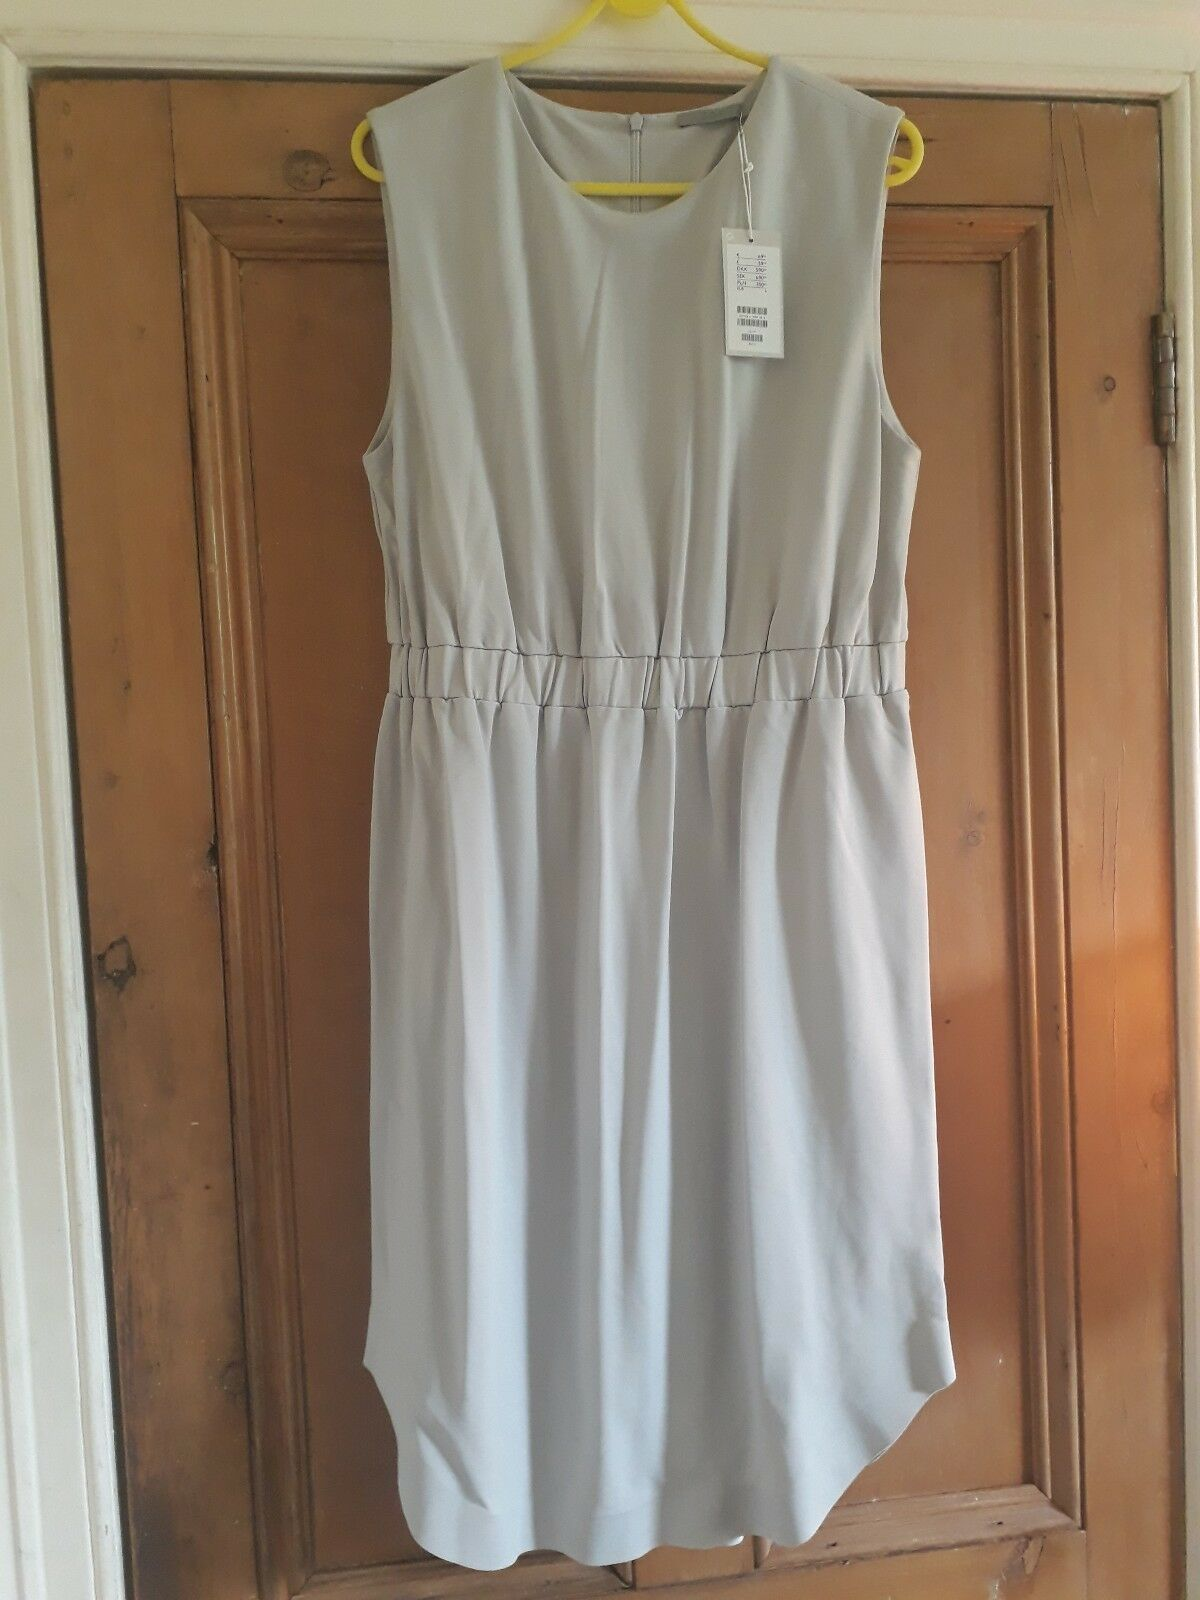 COS sleeveless dress with an elasticated waist  size L. New with tags.